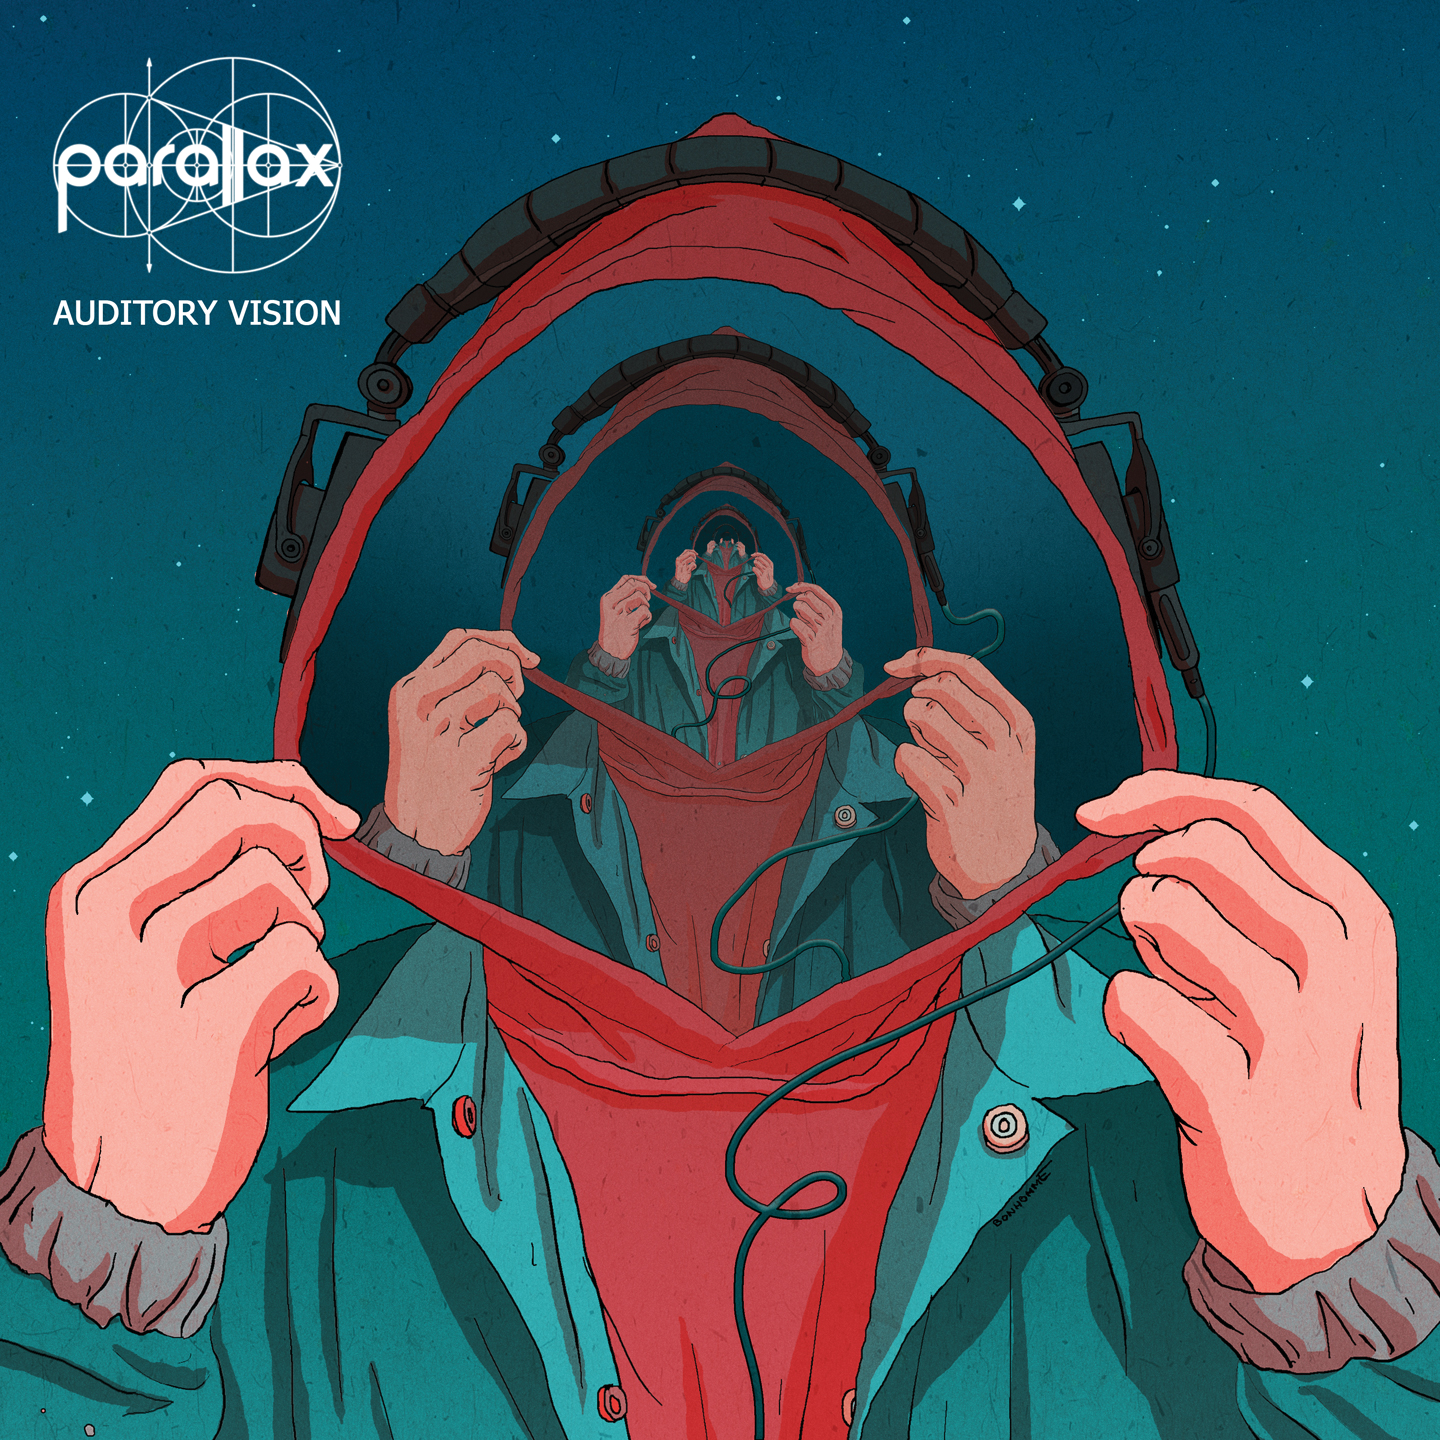 "Auditory Vision - Parallax's highly anticipated debut LP was released Independently in December of 2018 with features from Rakaa Iriscience of Dilated Peoples, Pheonix Da Icefire, C.A.M, Tiece & Lydia O.'""A high energy sonic journey painted with vivid penmanship on social commentary and personal struggles, Parallax tells relatable tails from life in London over a landscape of both hard hitting and laid back production"" Stimulateyoursoul.com"